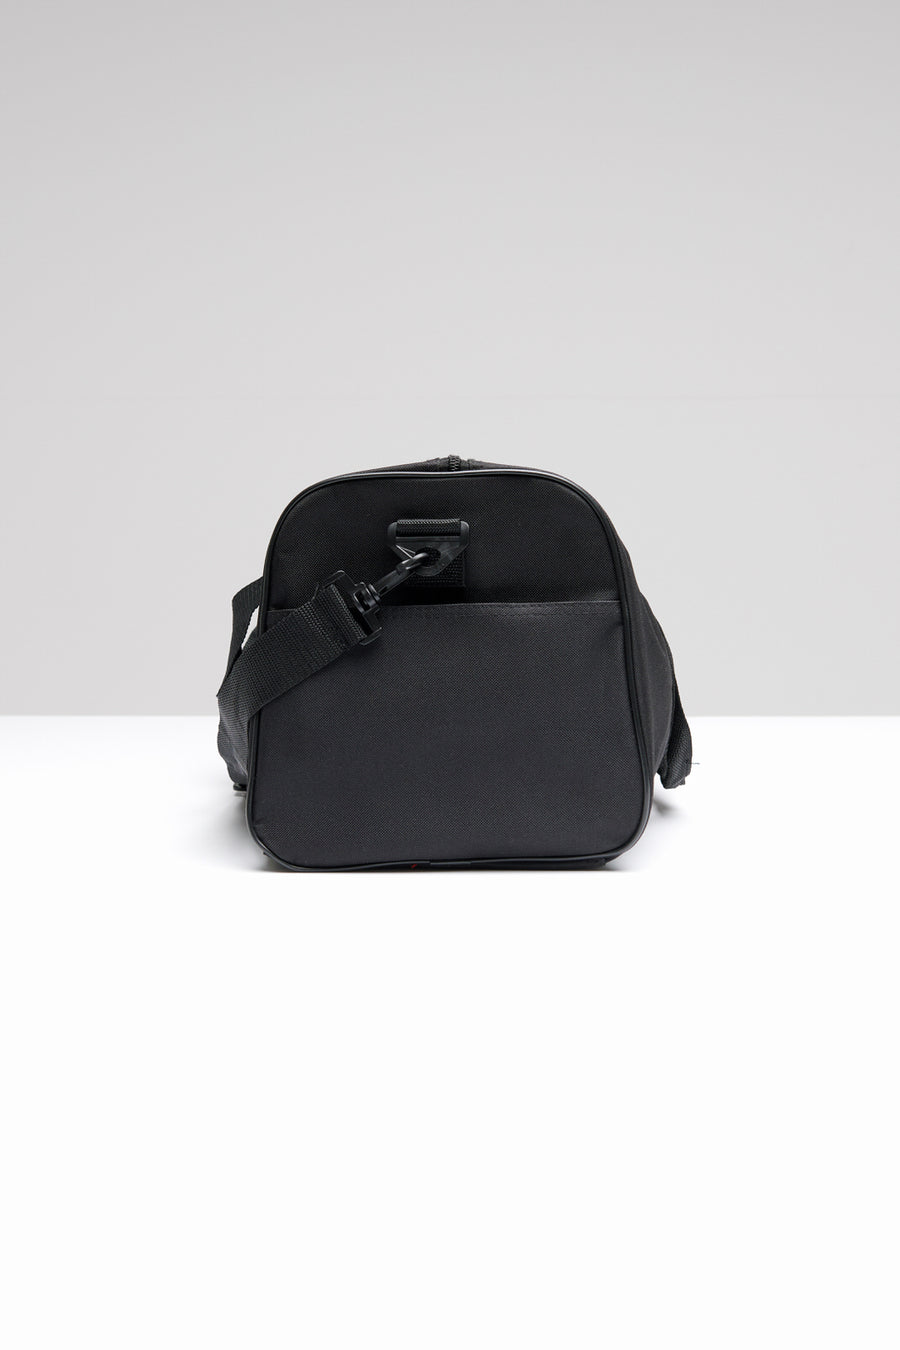 Rebirth - Duffle Bag (Black)